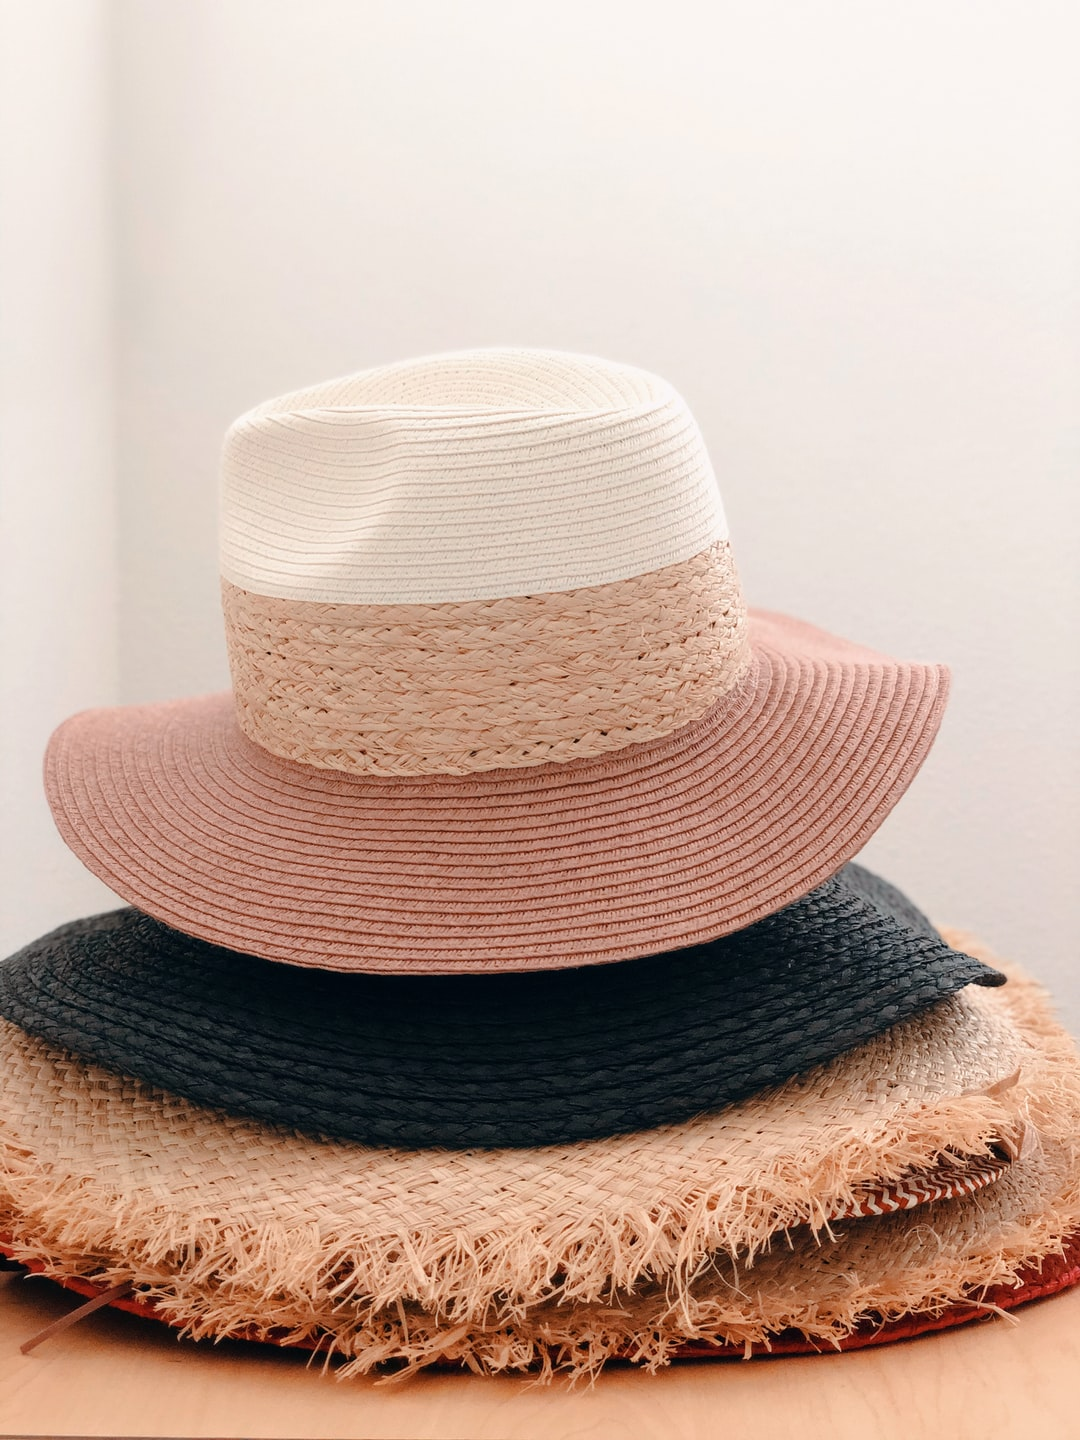 A Stack of Hats